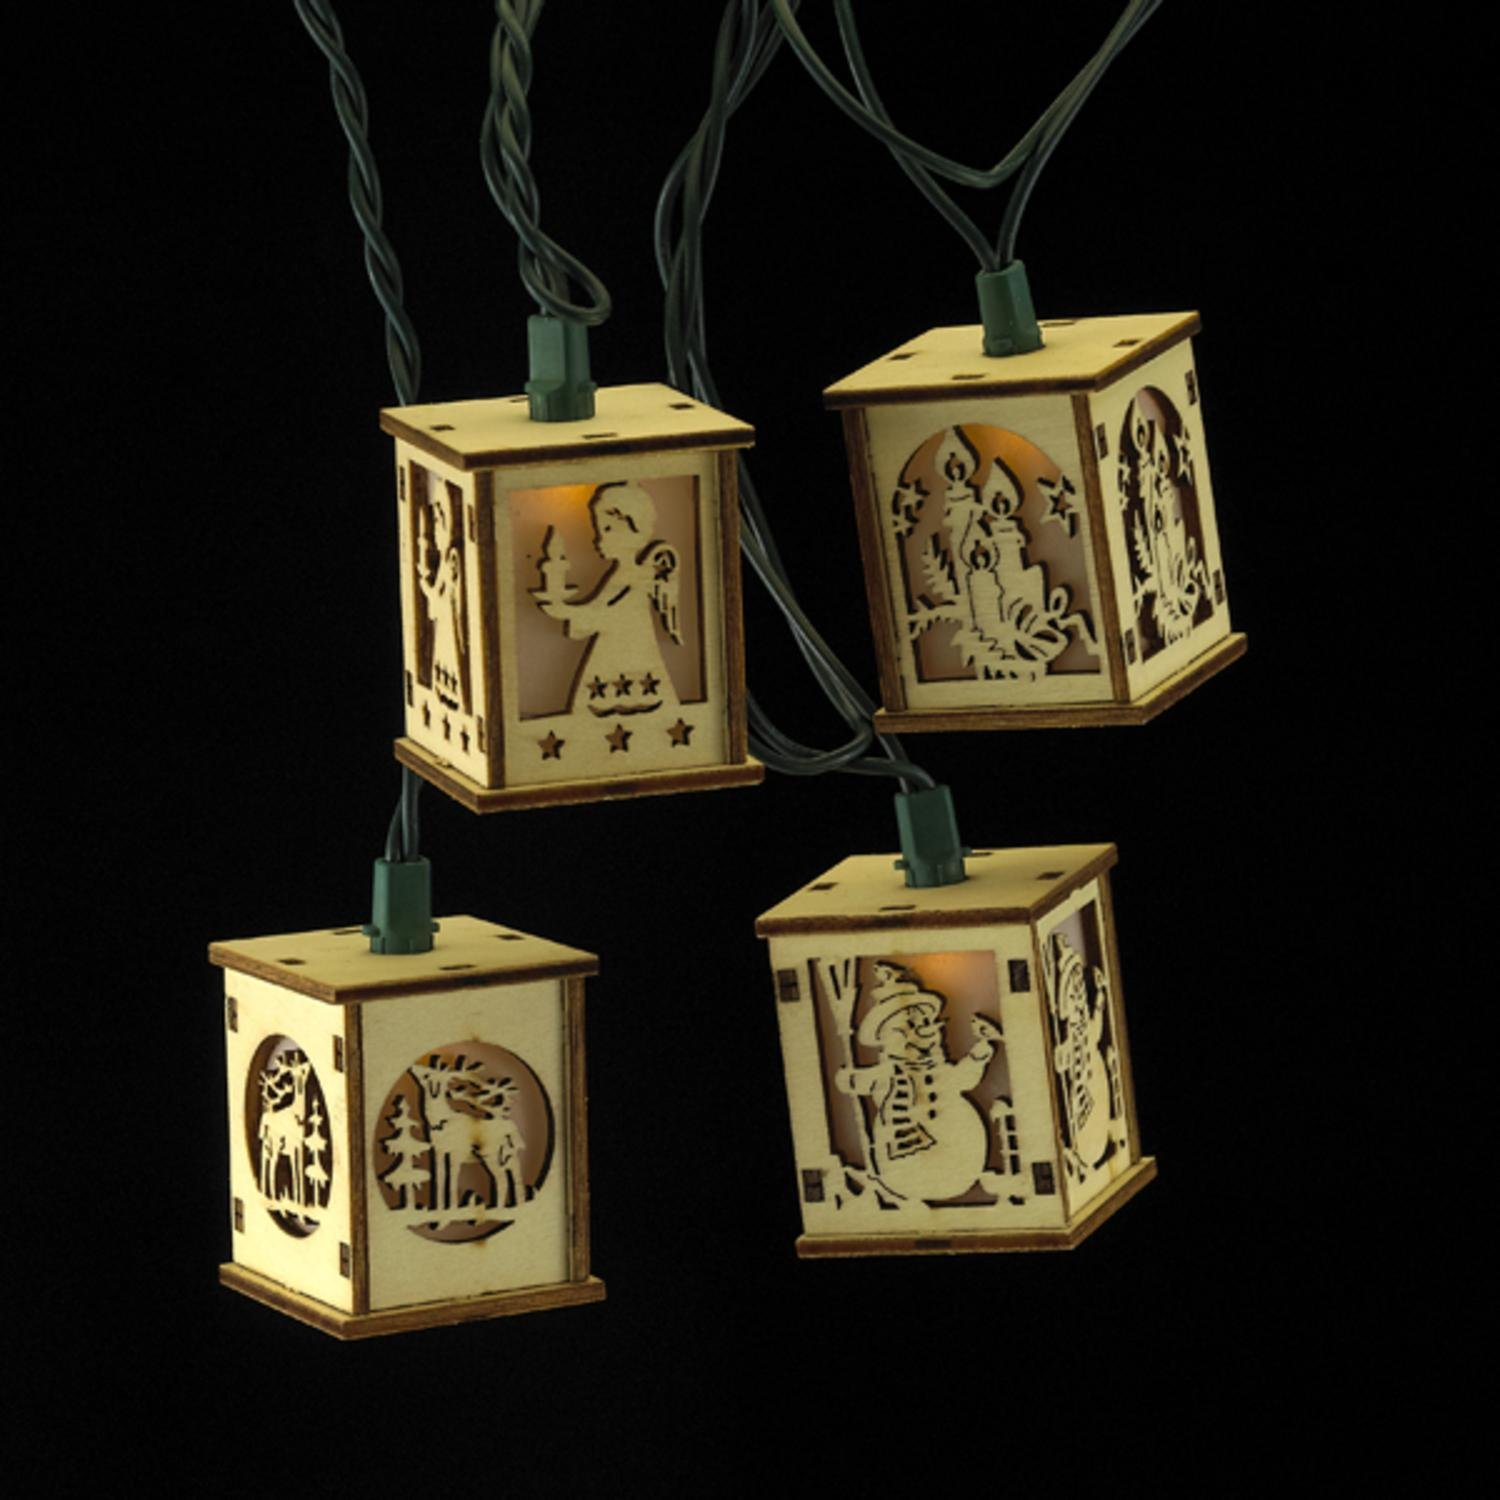 Set of 10 Holiday Wood Box Lantern Christmas Lights - Green Wire